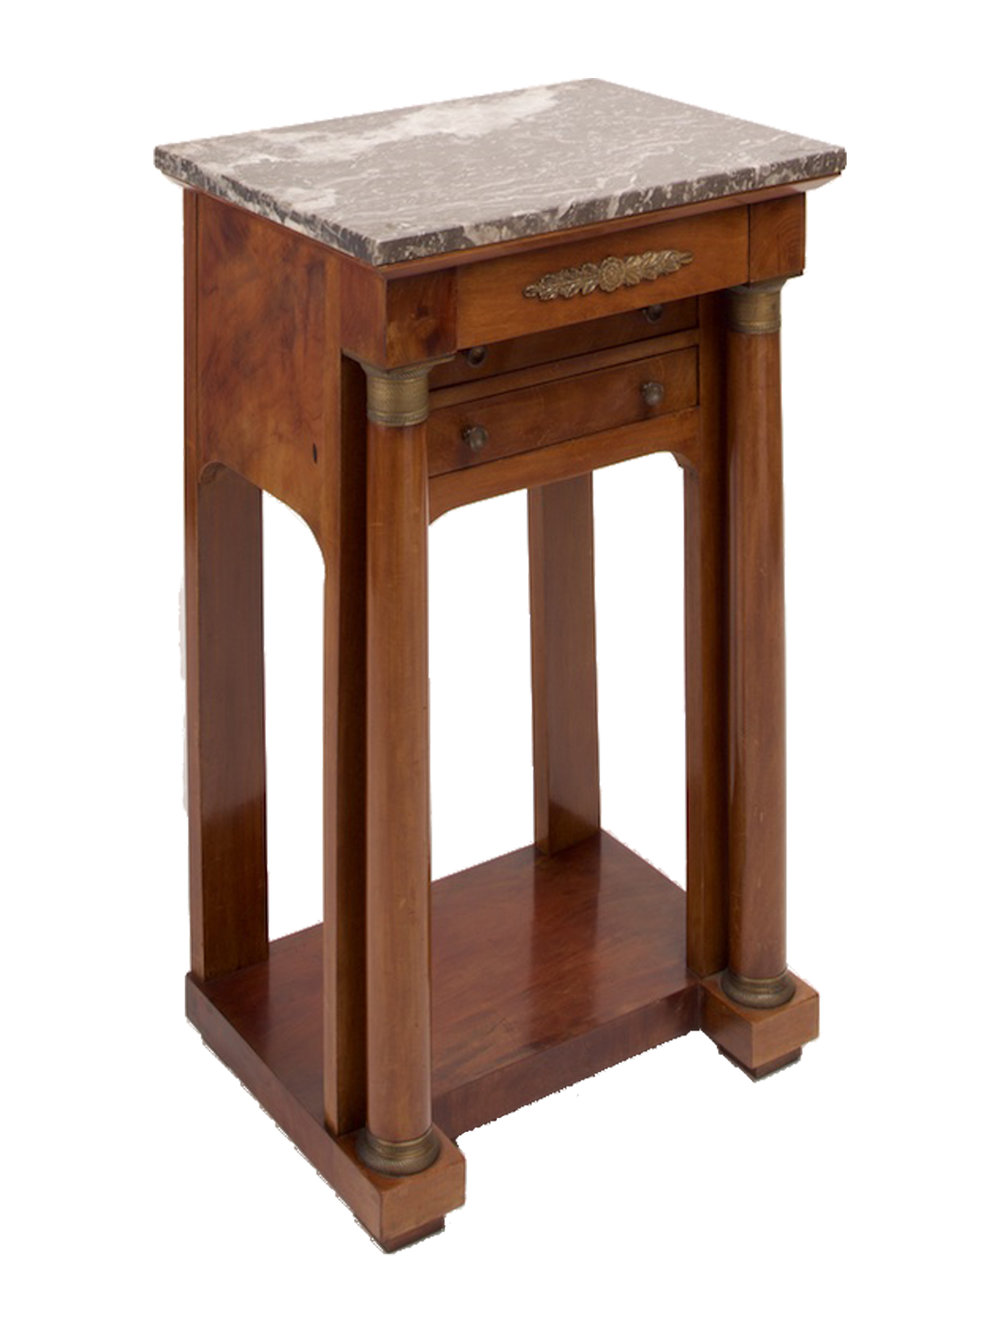 Antique French Empire Style Side Table / Bedside Table